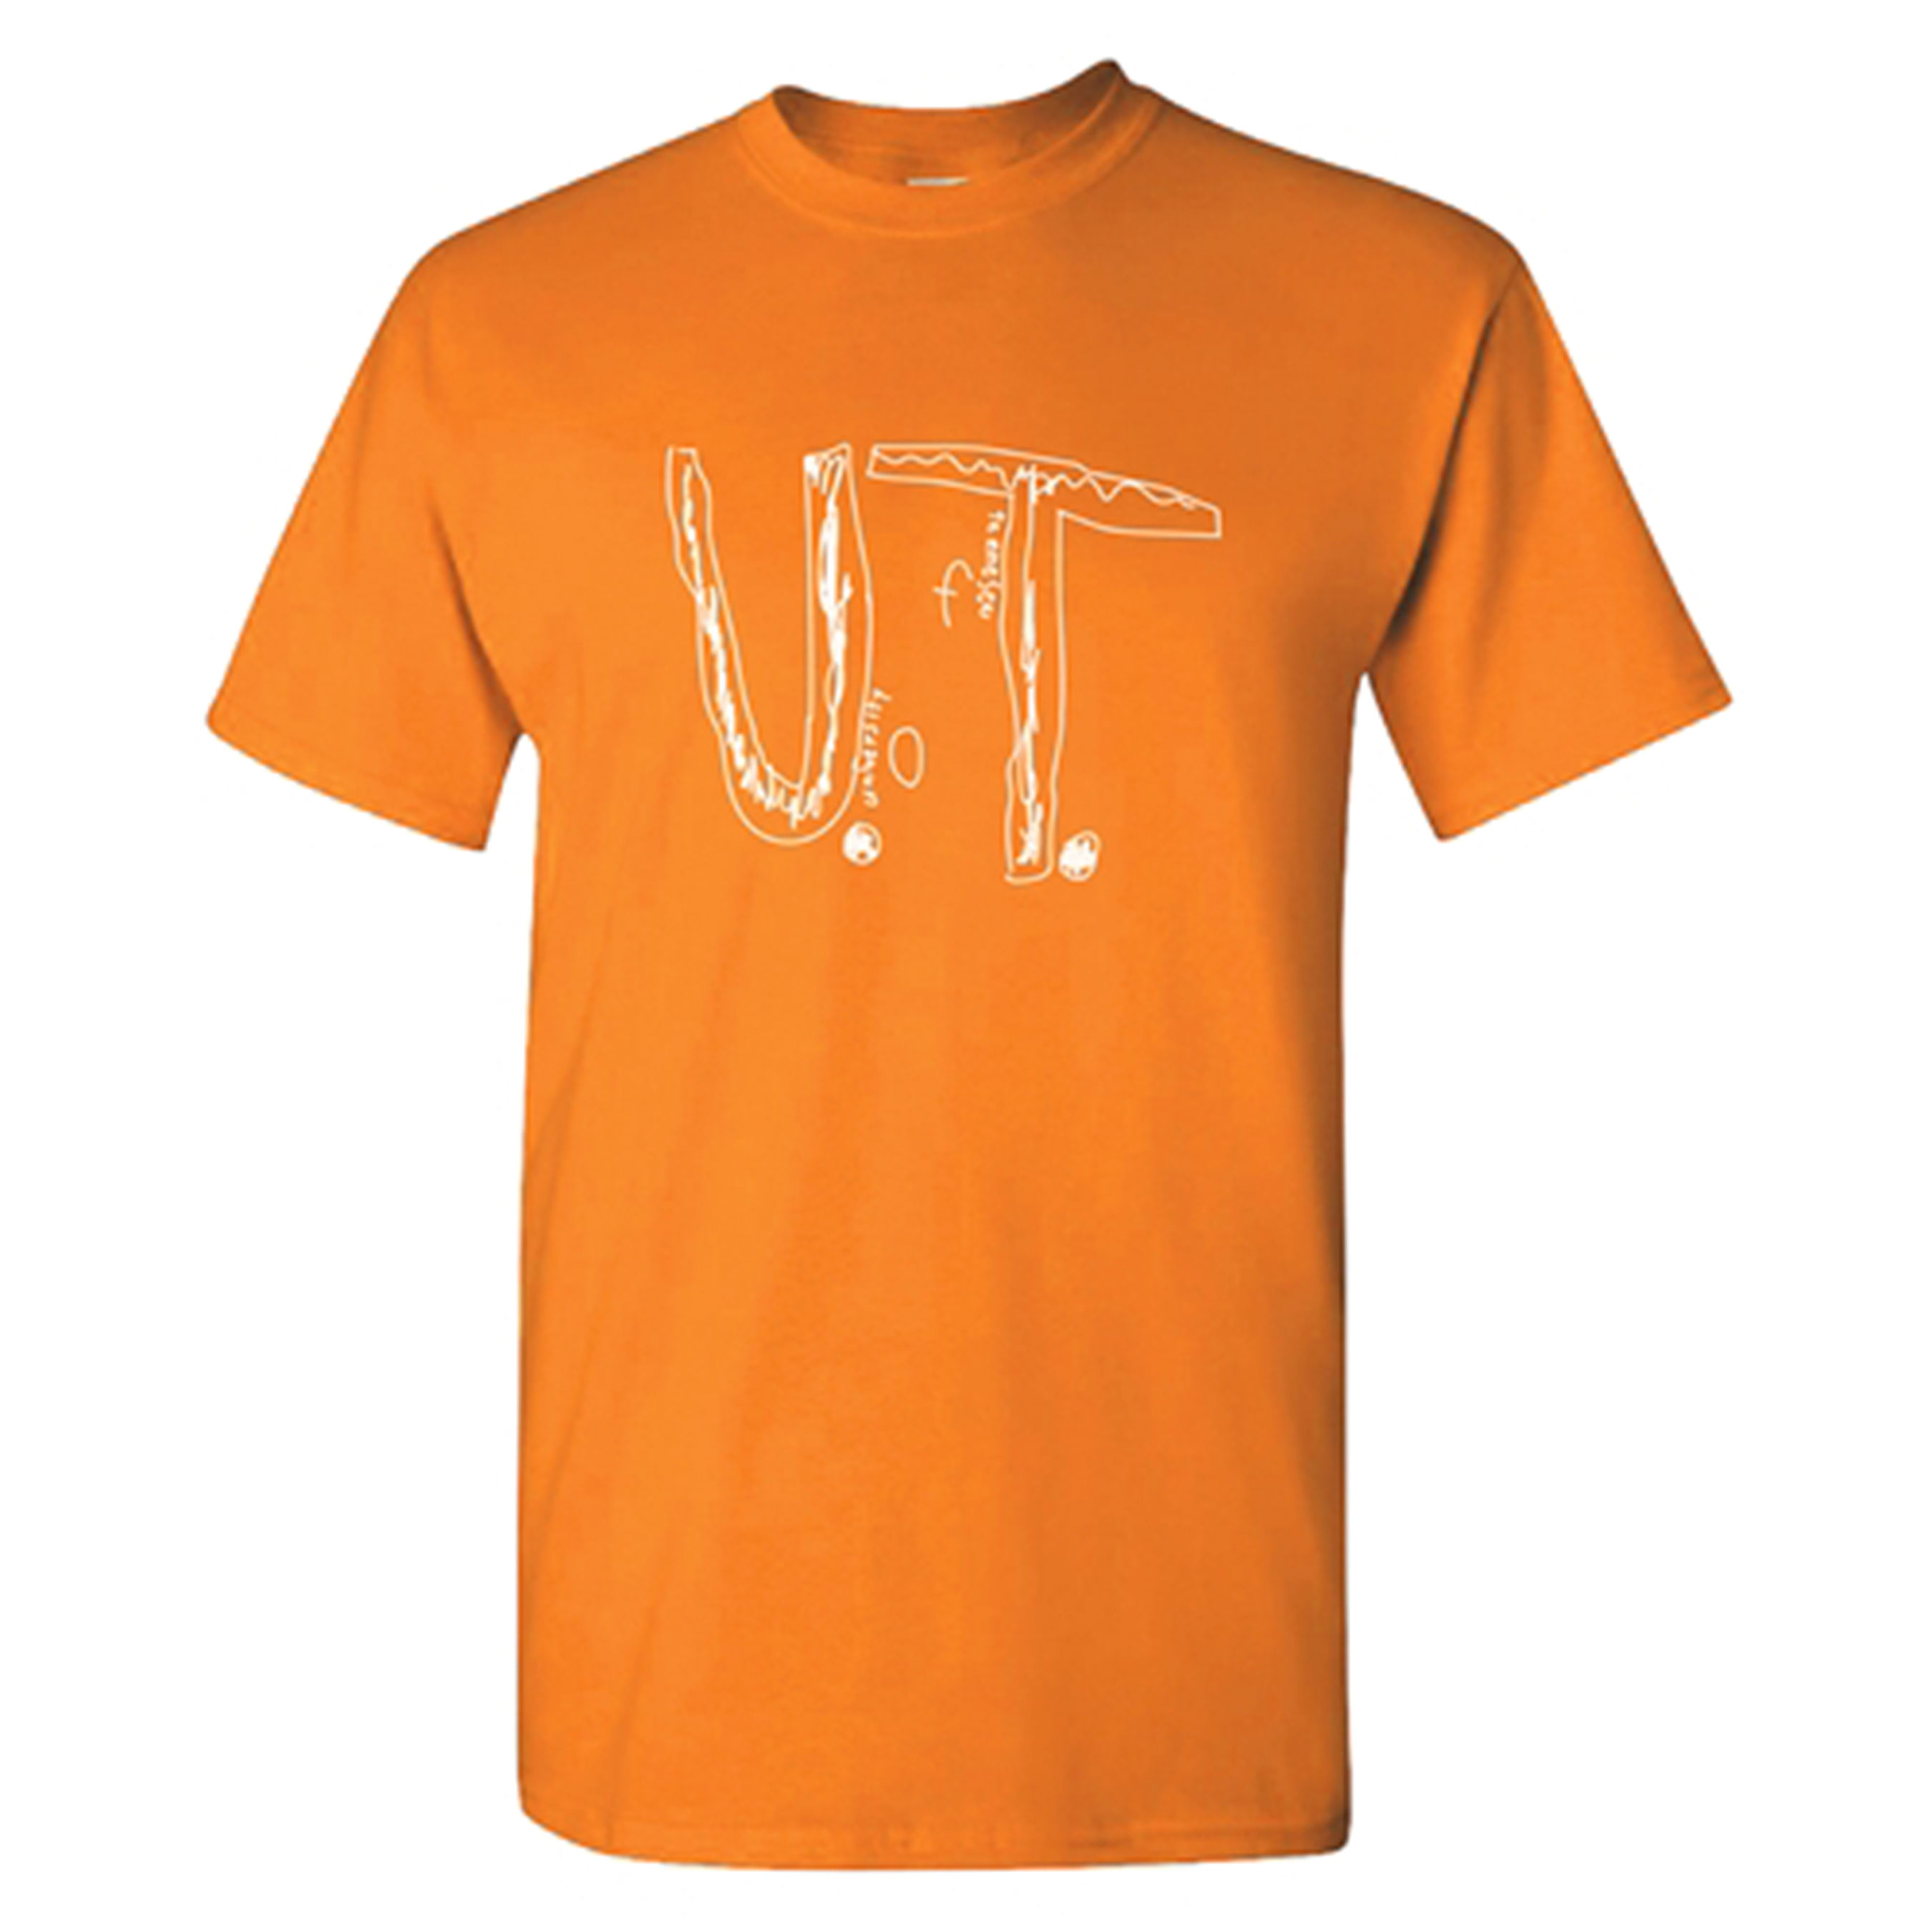 Boy Bullied Over His Homemade University of Tennessee T-Shirt Gets Scholarship to School